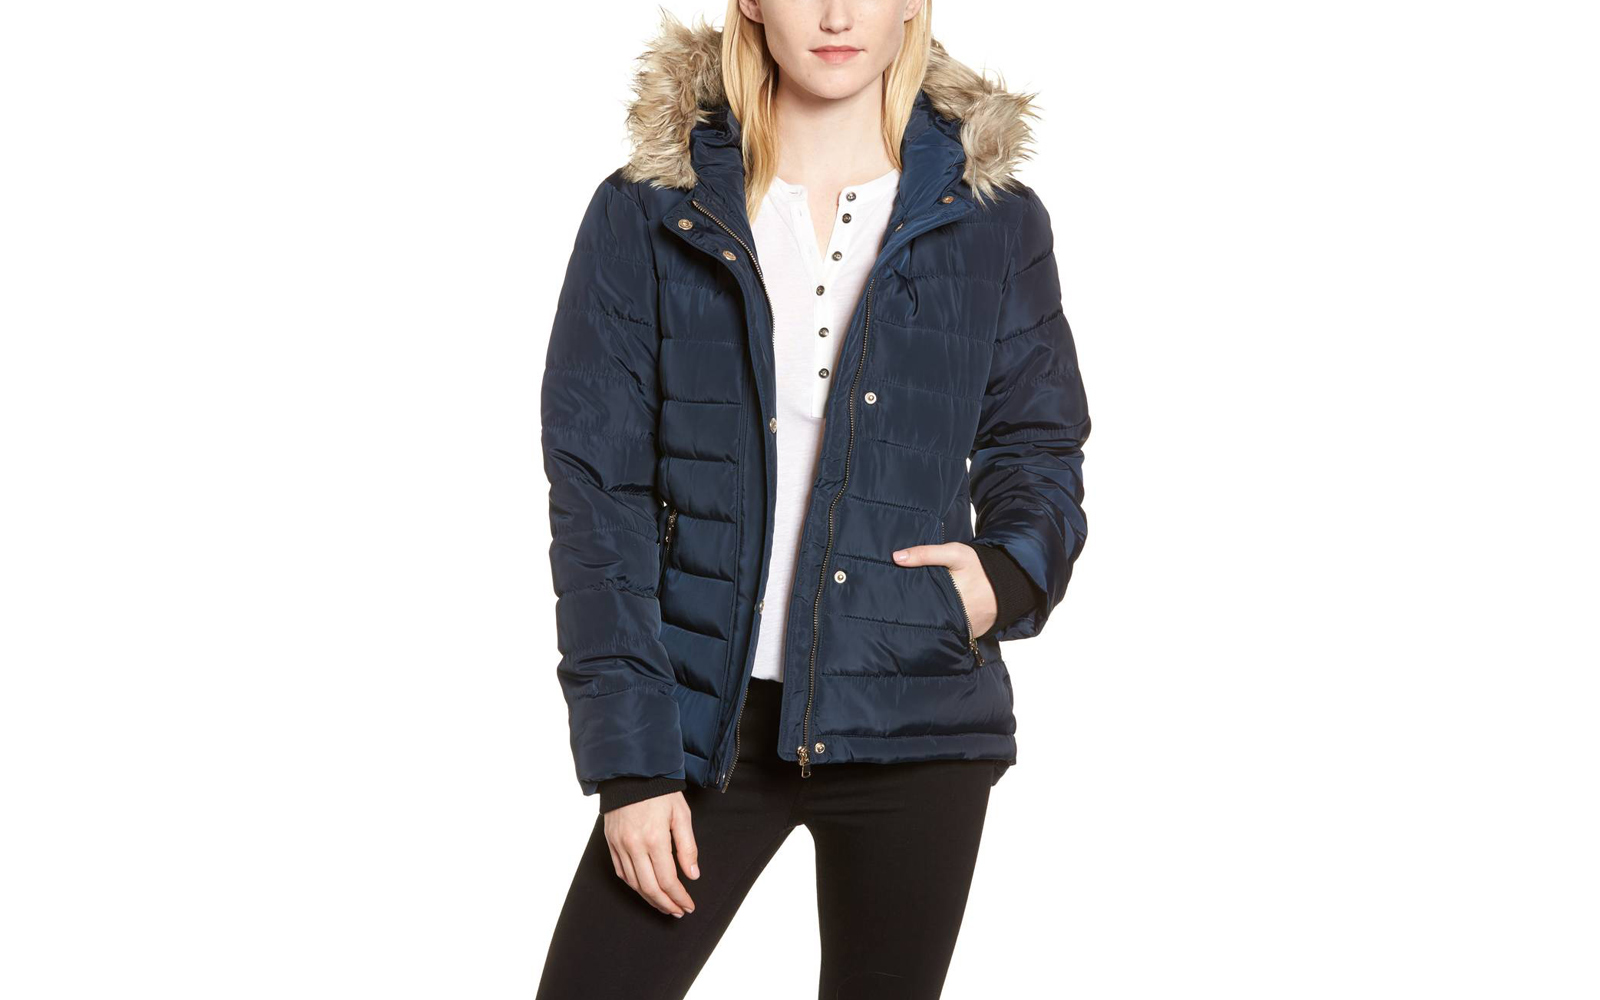 076028800 The Best Winter Coats Under $100 | Travel + Leisure